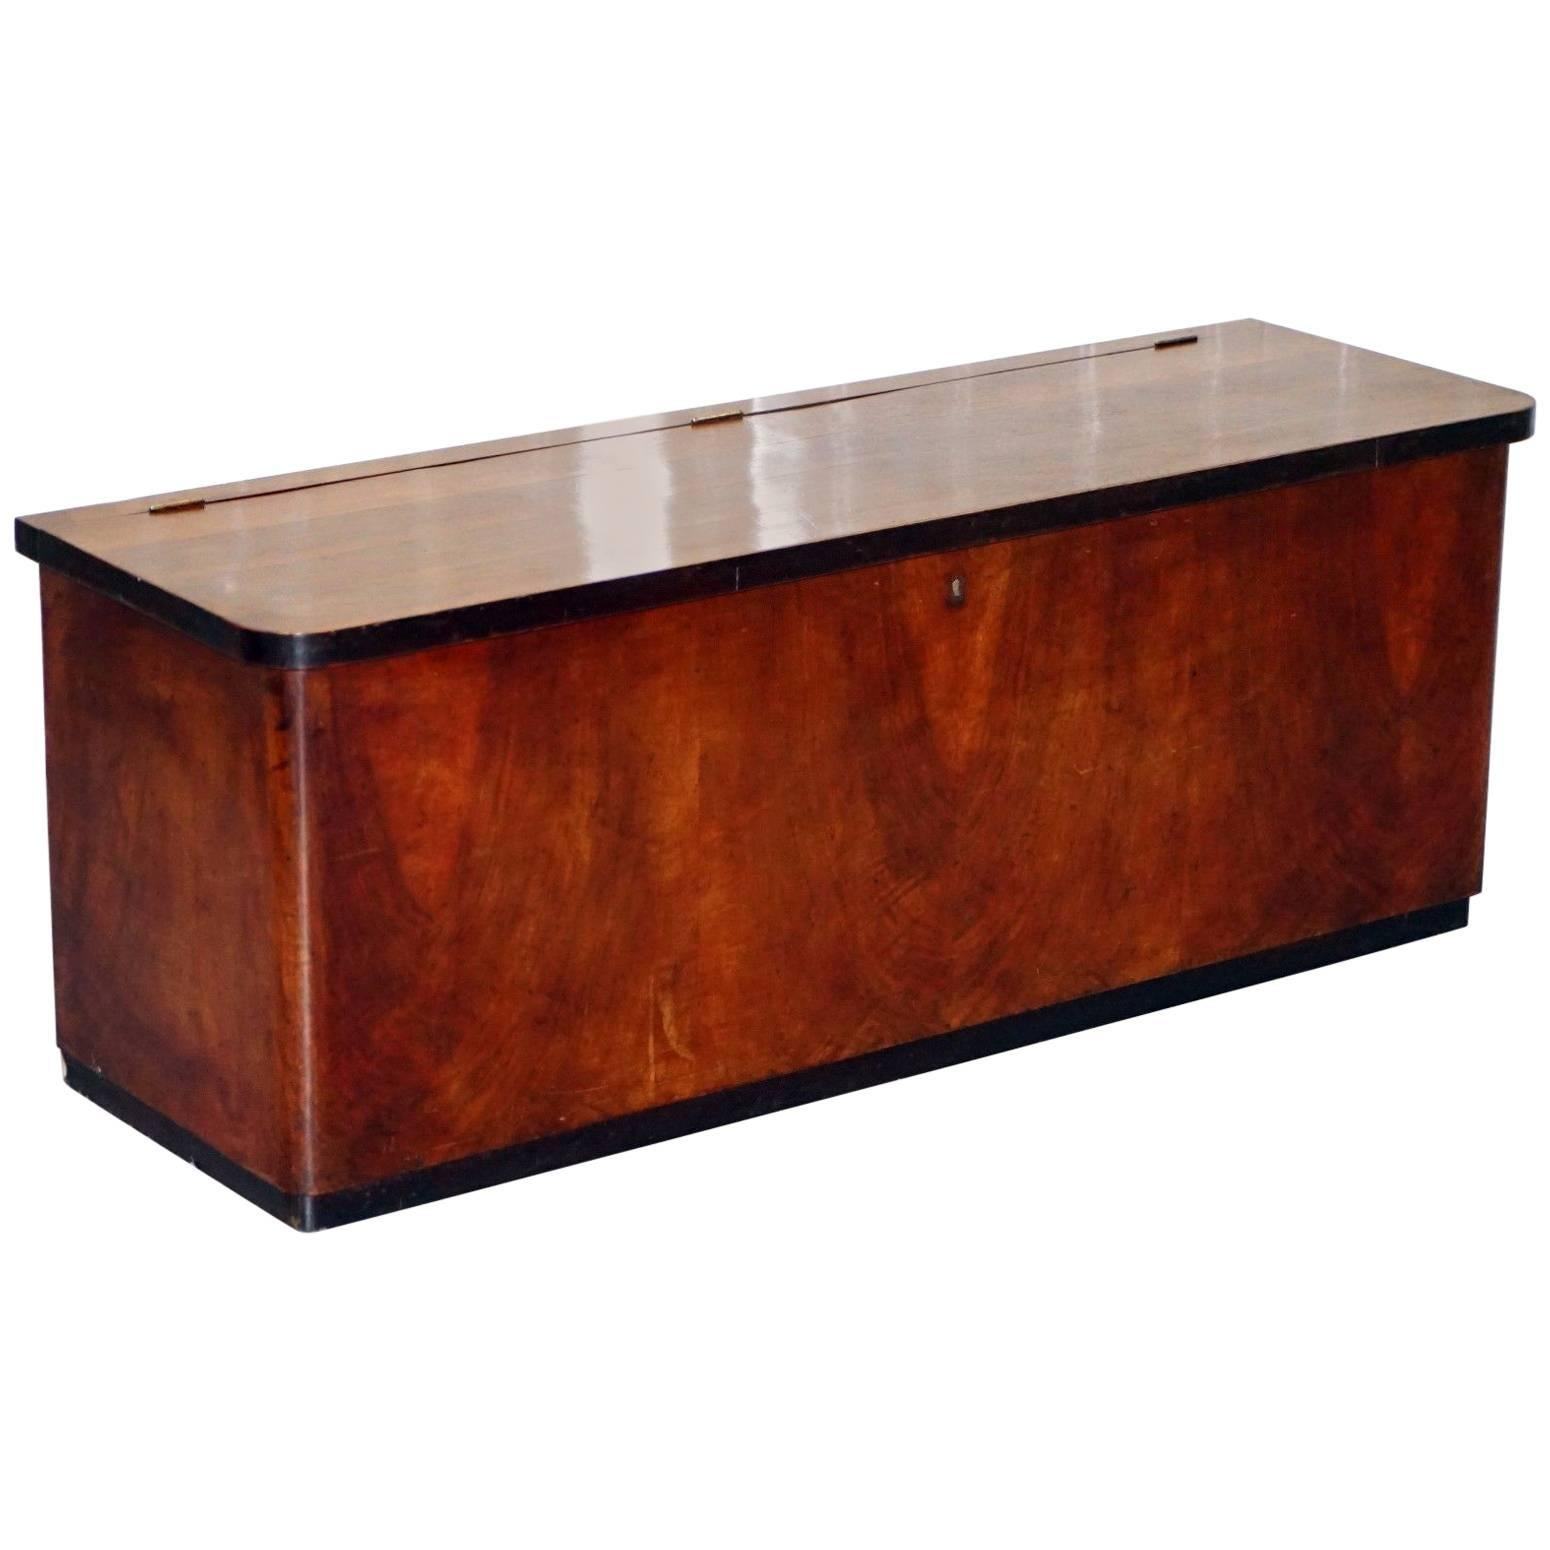 Charmant Antique Flamed Mahogany Chest Seat With Open Top Large Storage Trunk For  Sale